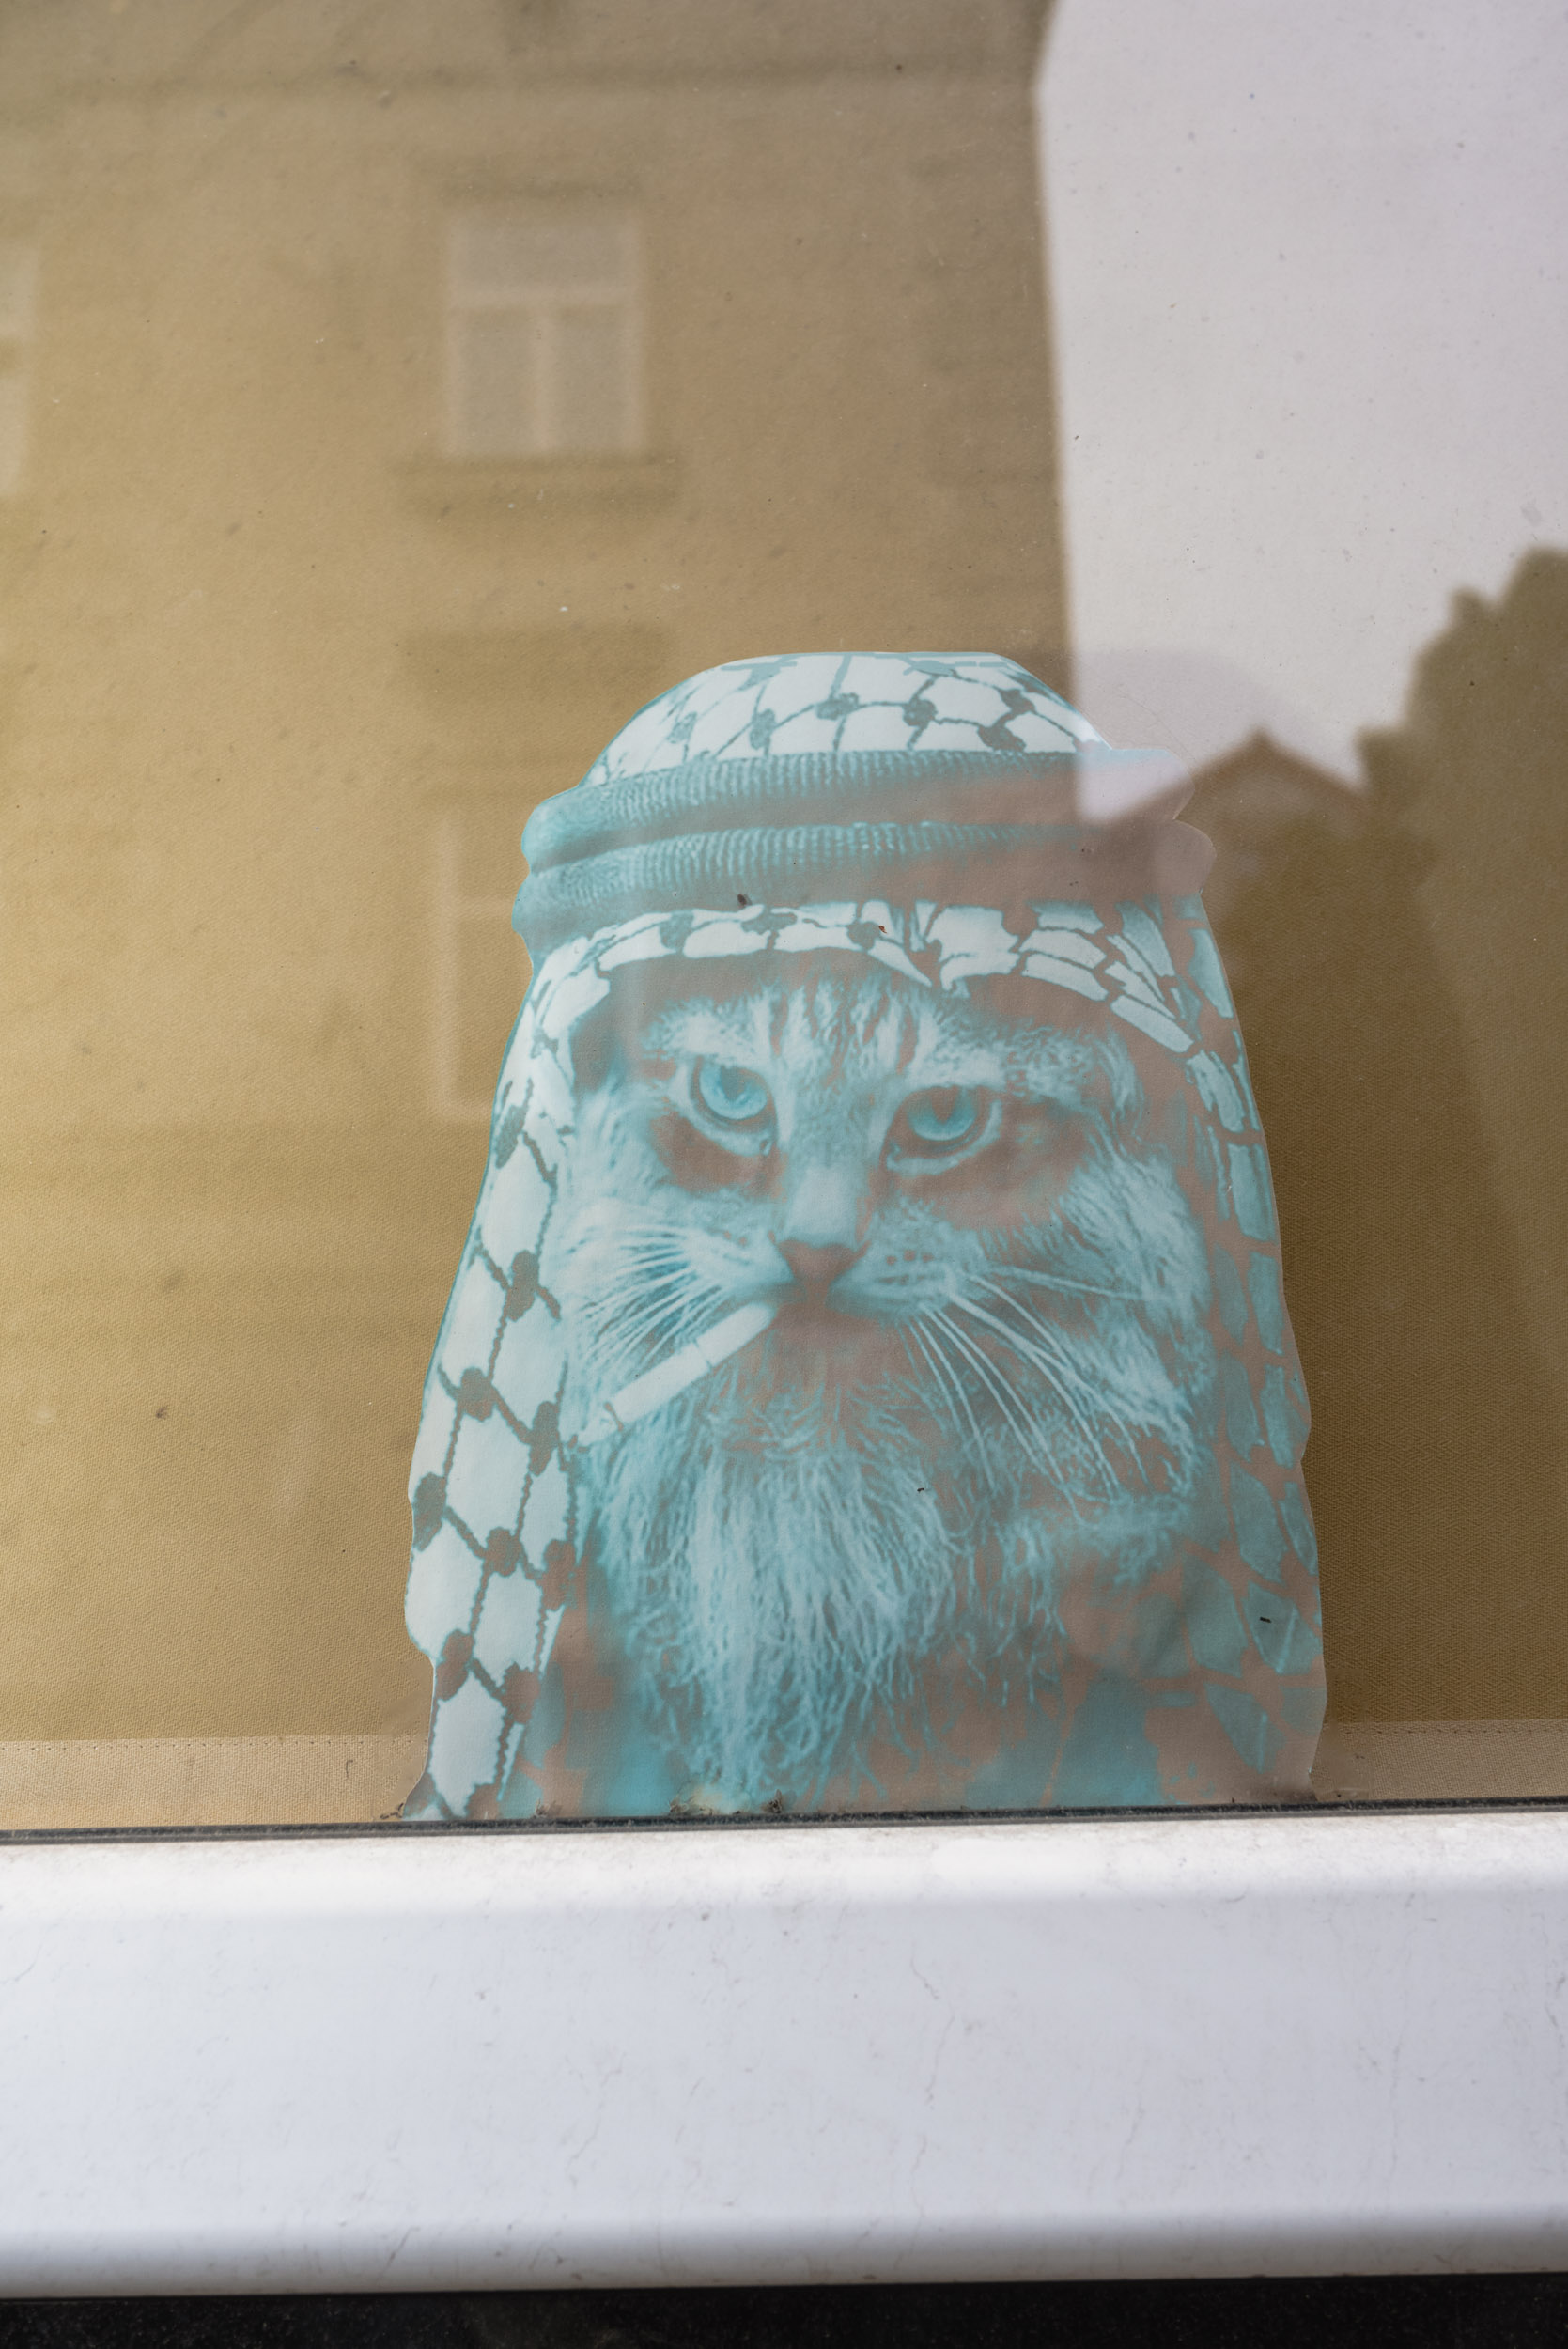 Rastafarian cat sticker in window